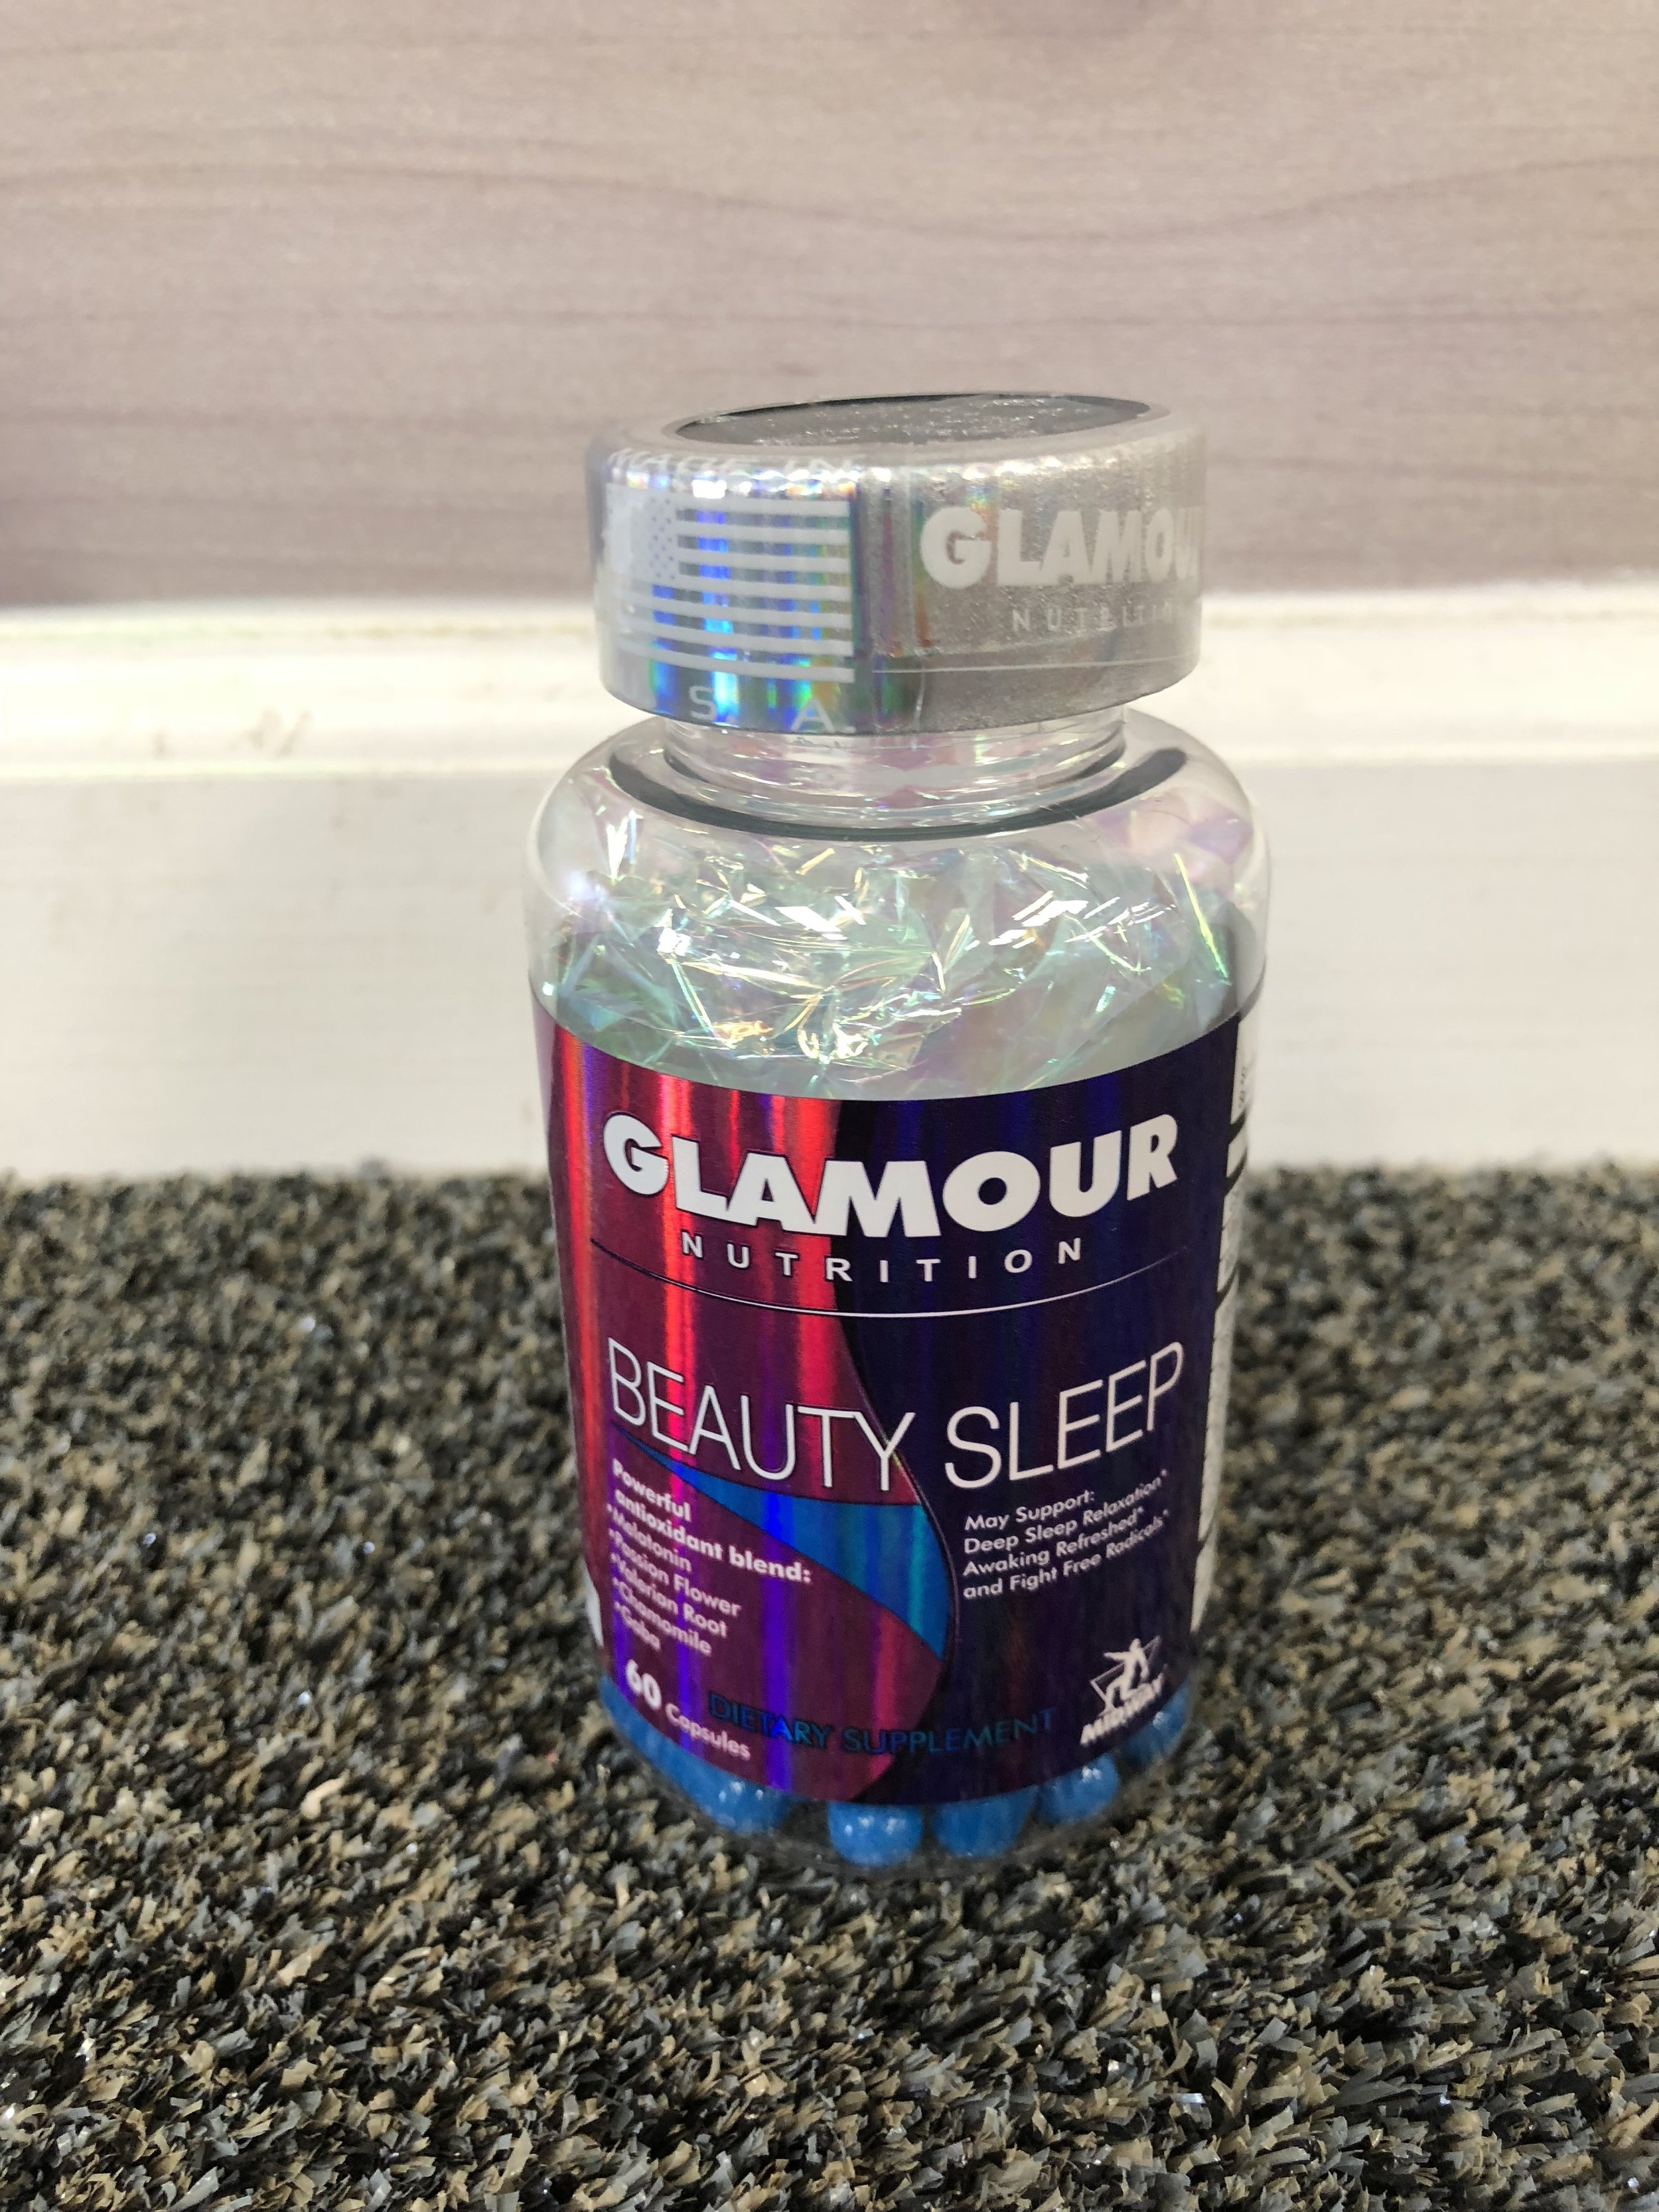 Beauty Sleep - This is a must have according to trainers Rick and Jess. This is so much more than your average melatonin. It helps calm your mind before bed and keep you in REM sleep during the night. Not to mention it doesen't cause nightmares or morning groggyness like other sleep aids. It's all natural so there is no need to worry about getting addicted. Although, we are obsessed.